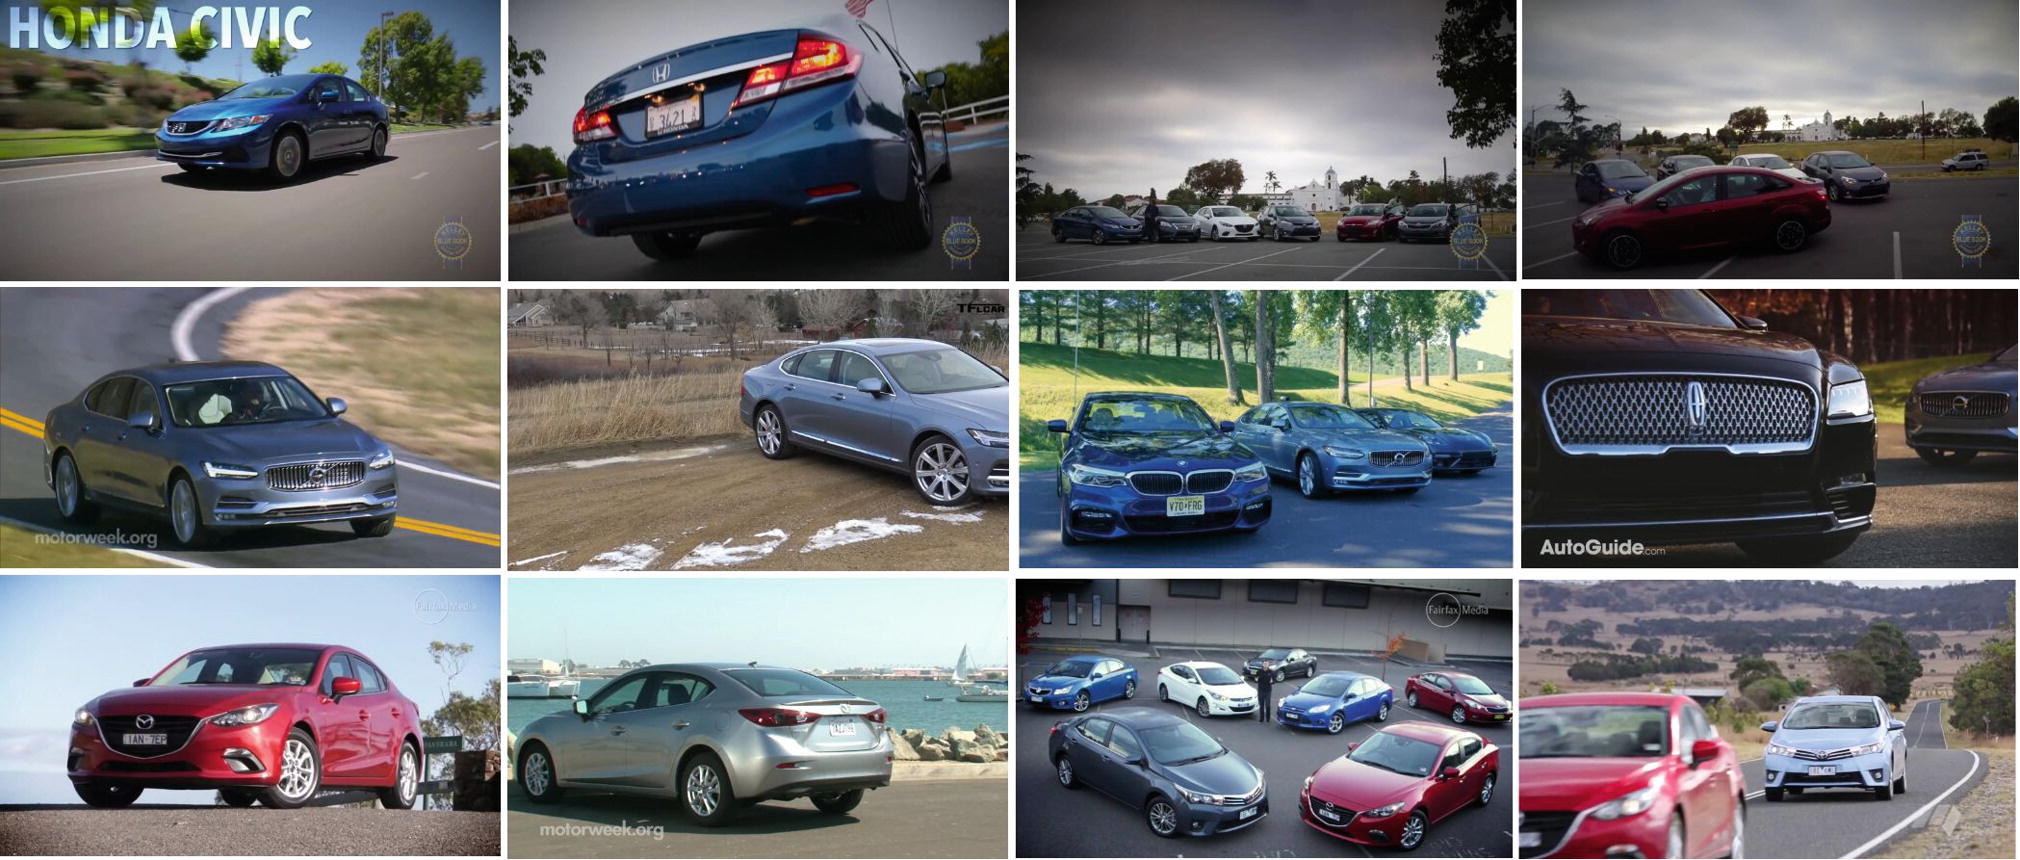 CarVideos: A Novel Dataset for Fine-Grained Car